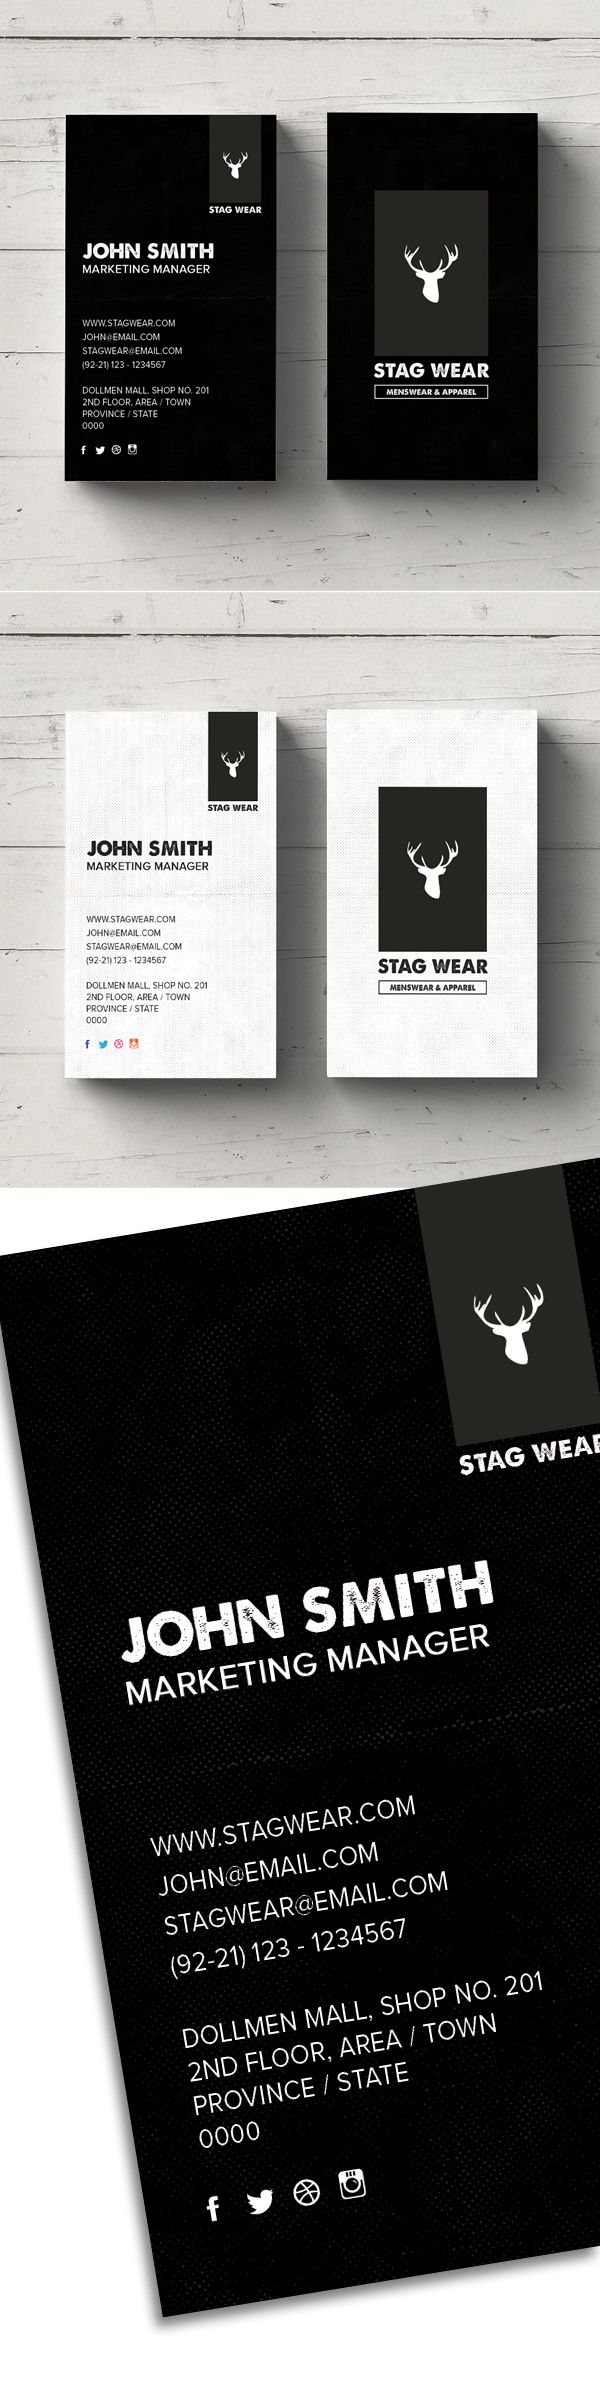 Free vertical business card psd template vertical black freebie vertical business card psd template freebies reheart Gallery